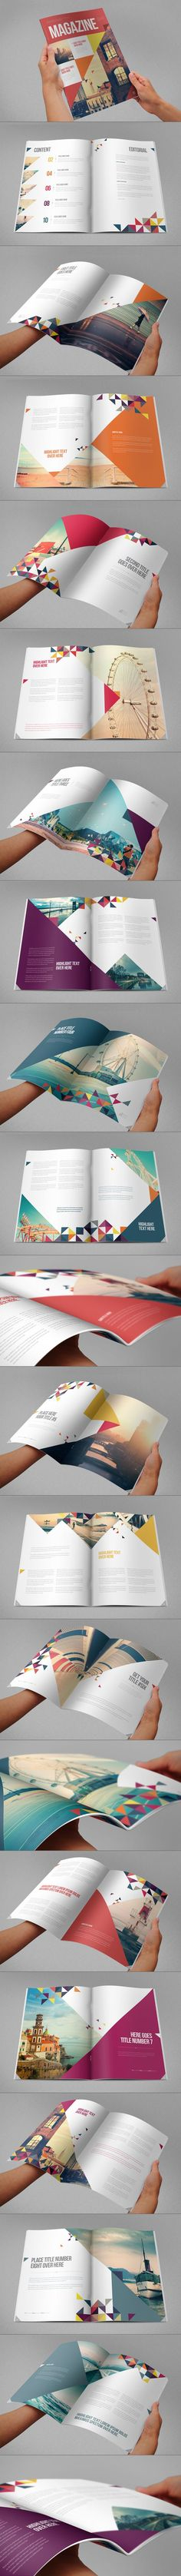 Modern Triangles Magazine. Download here: http://graphicriver.net/item/modern-triangles-magazine/7083597?ref=abradesign #design #magazine #editorial: